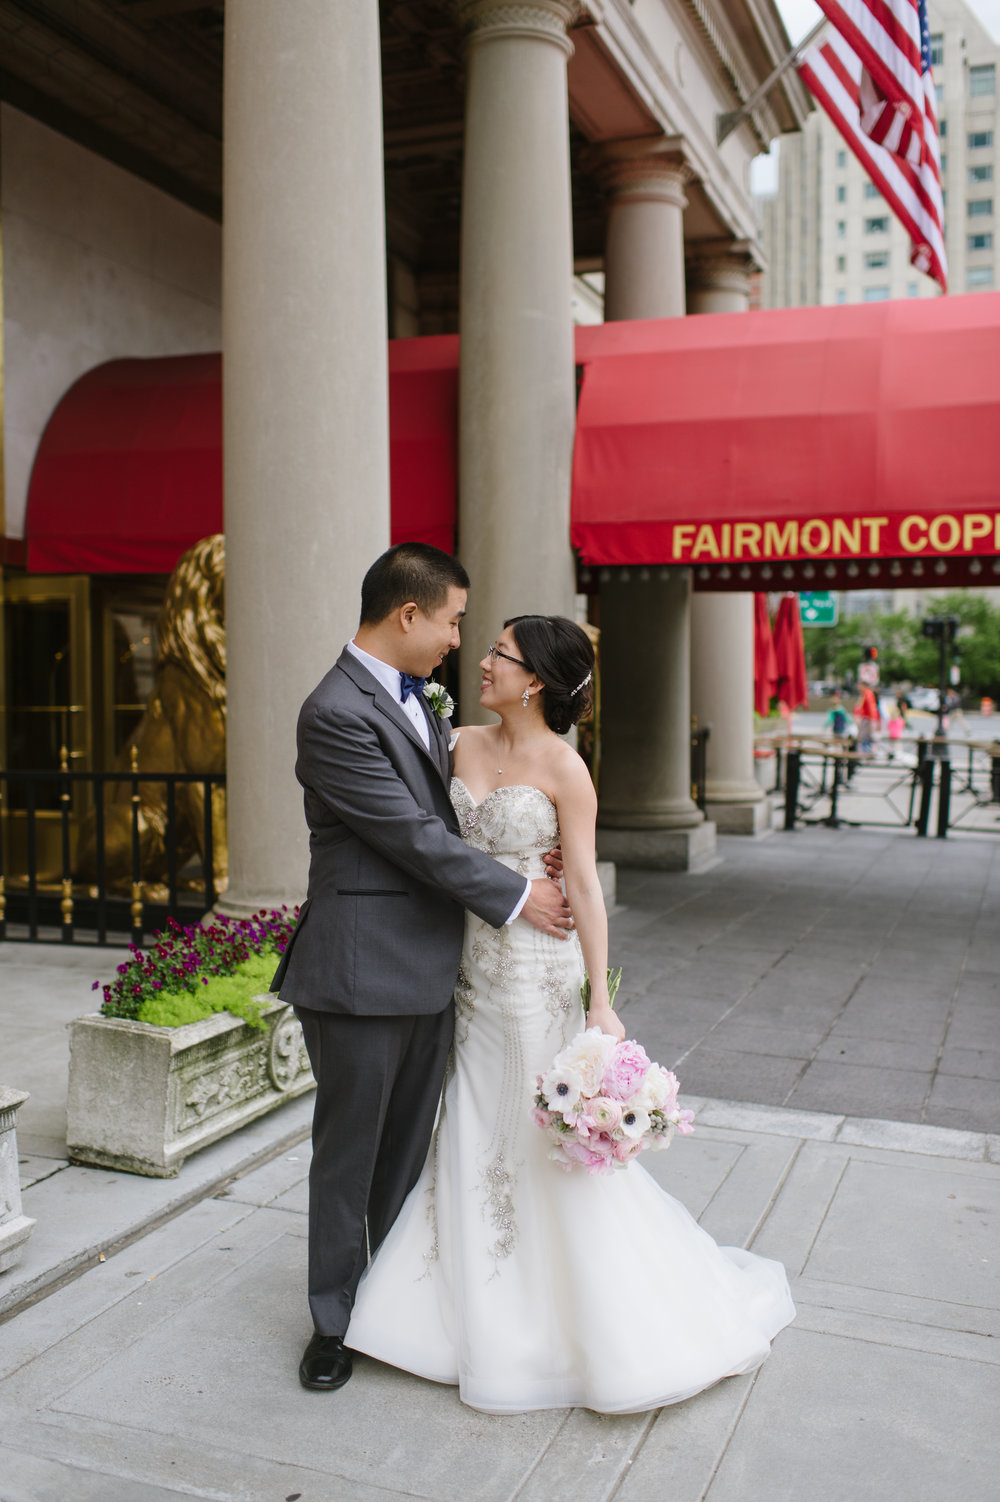 Fairmont-Copley-Wedding017.jpg